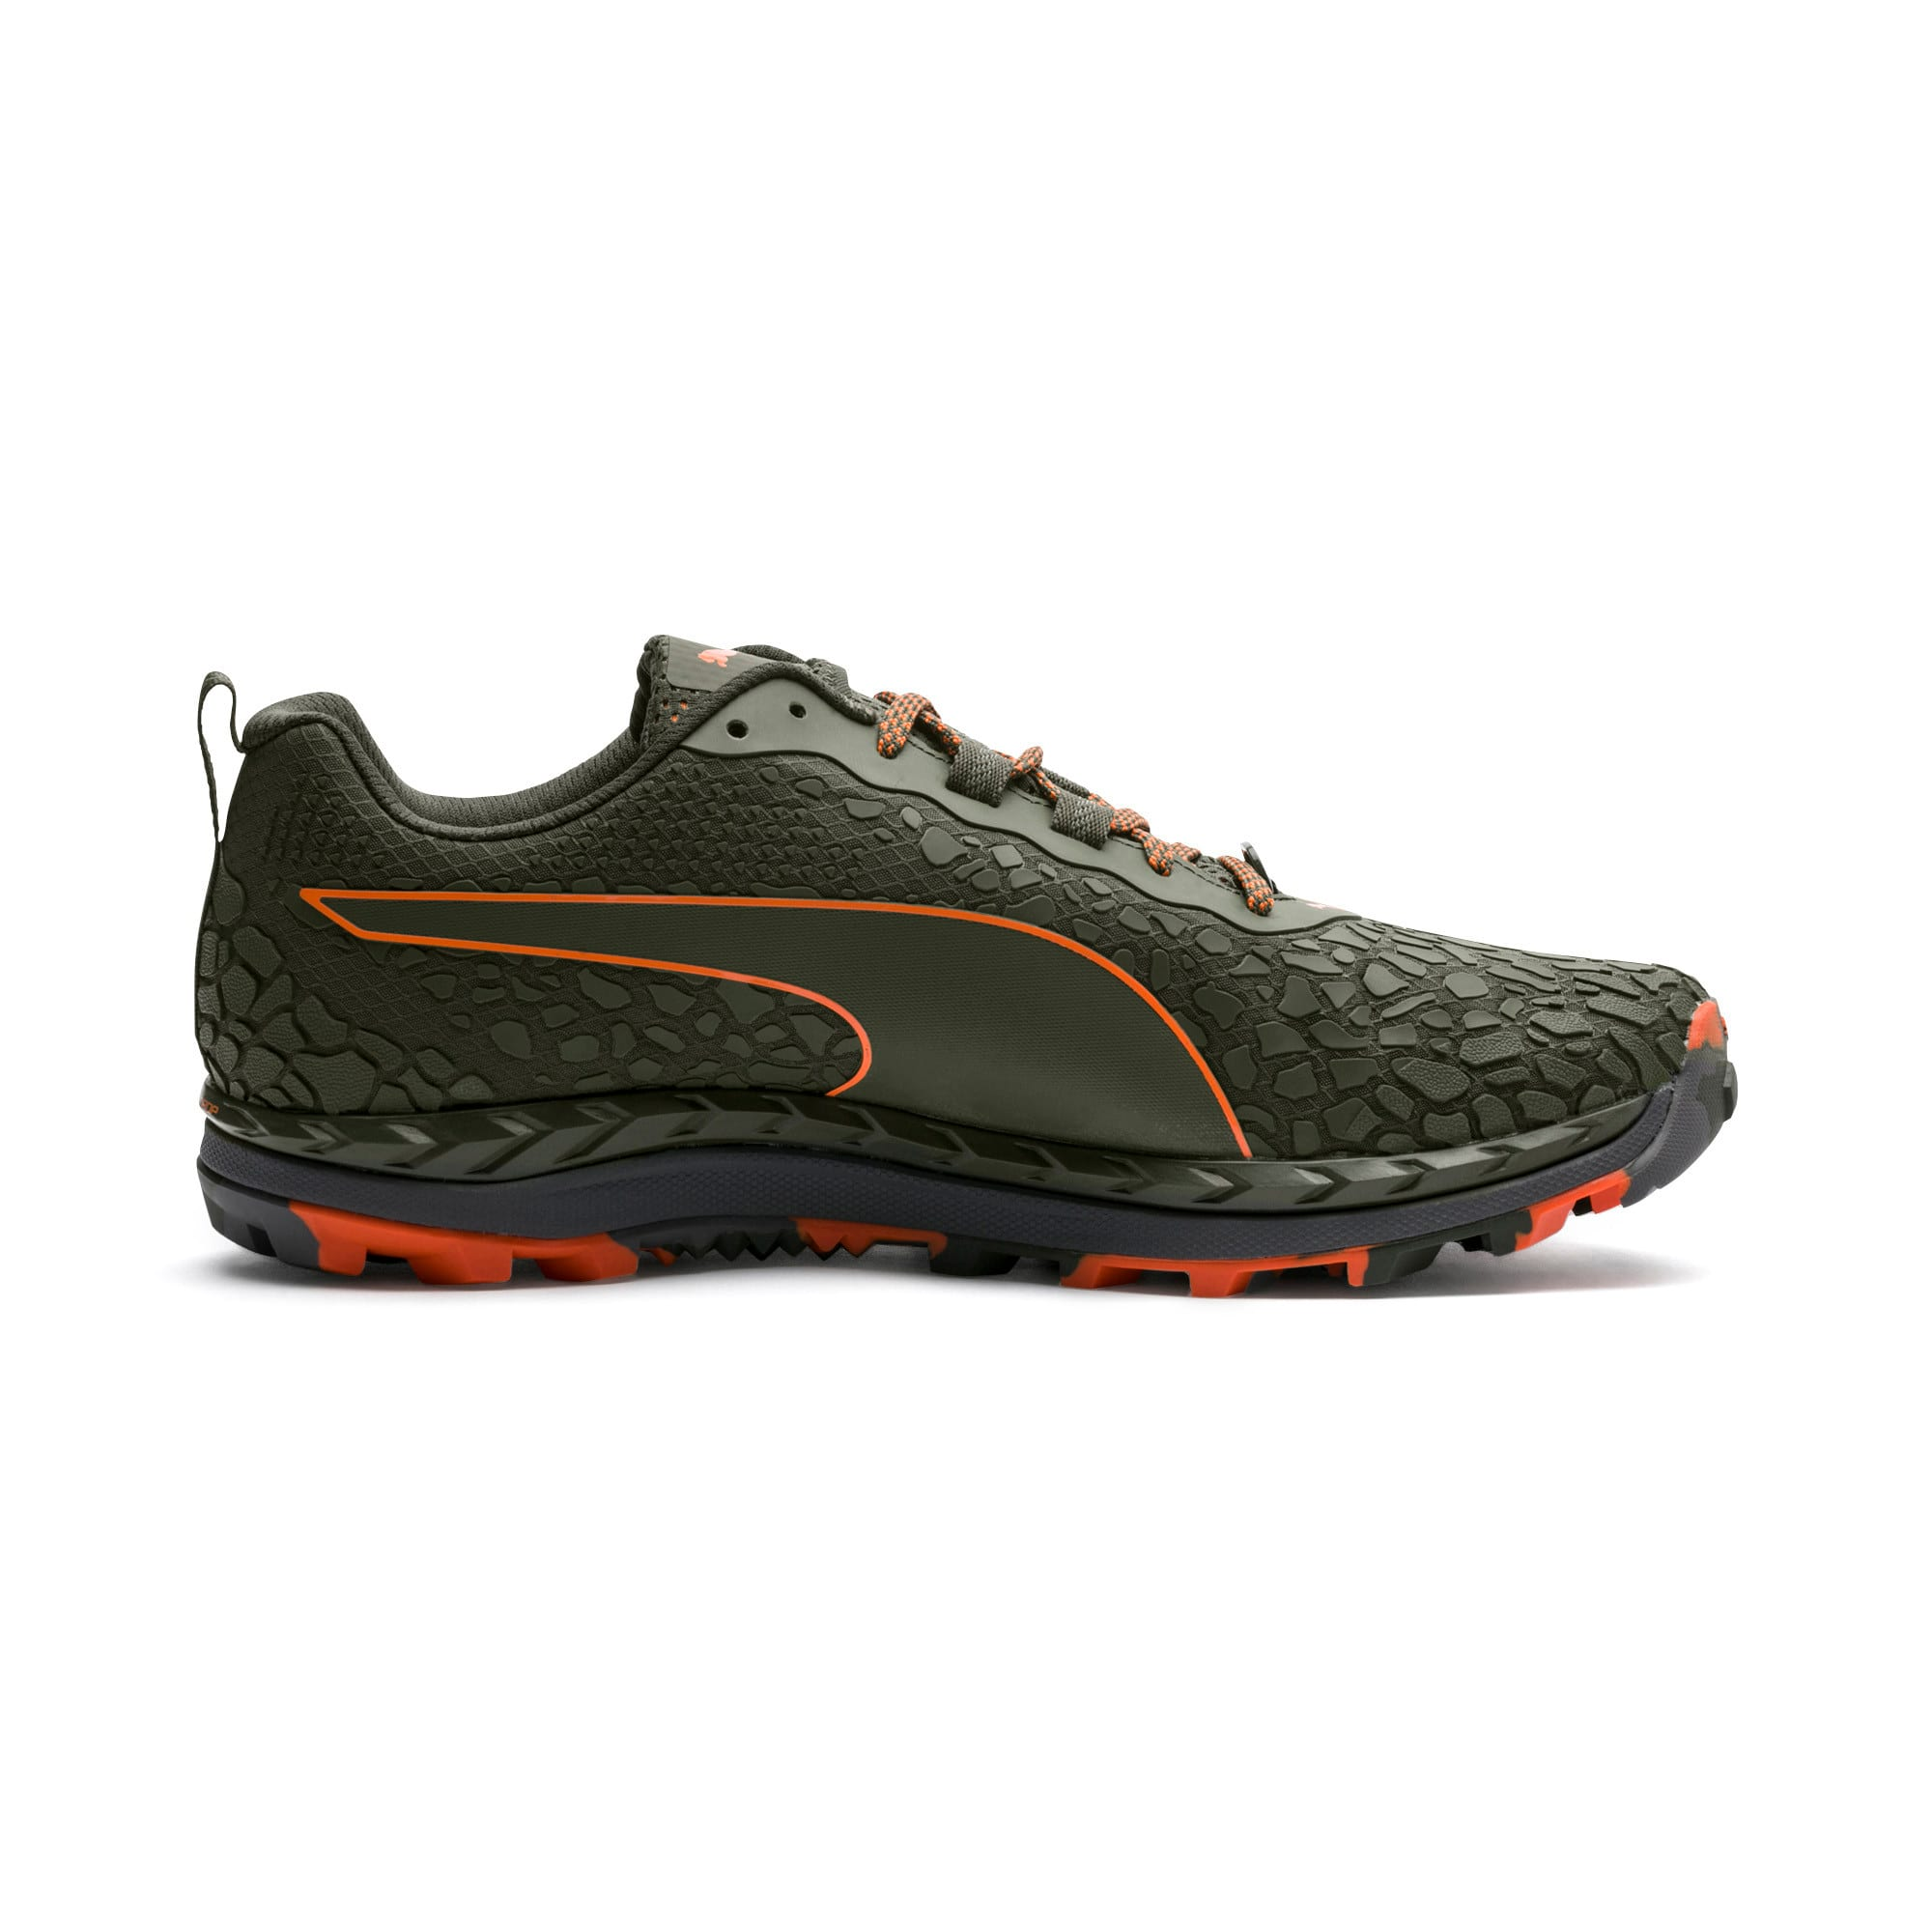 Thumbnail 5 of Speed IGNITE Trail 2 Men's Running Shoes, Forest Night-Firecracker, medium-IND